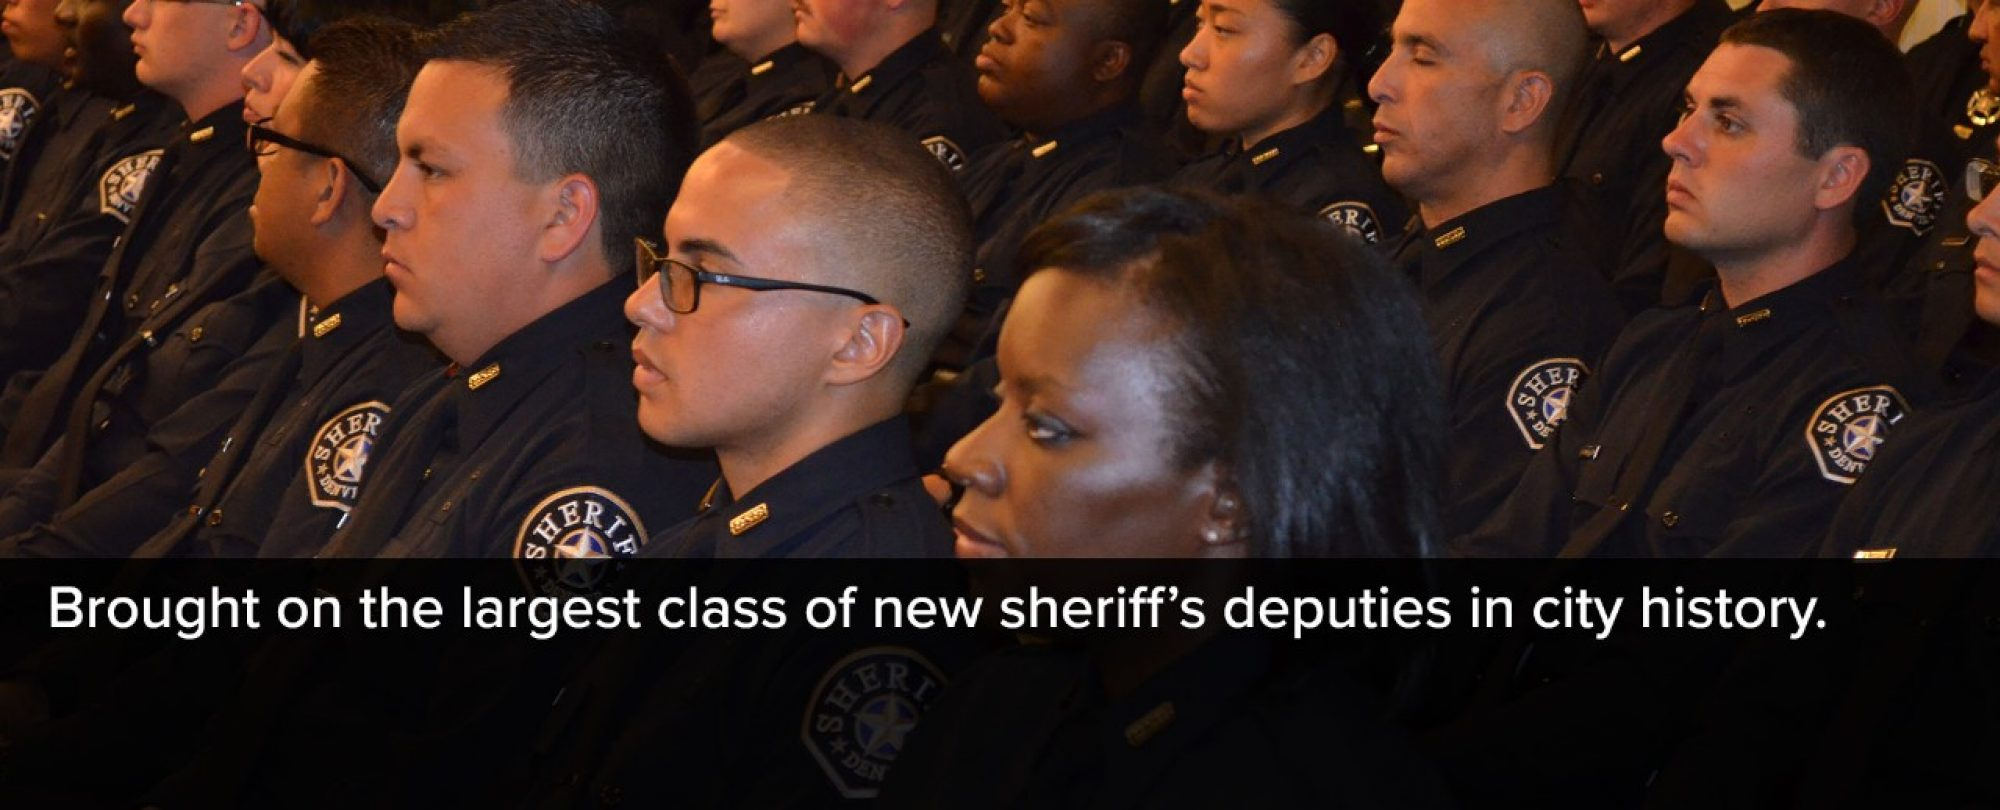 Photo of Denver Sheriff Recruits during the recruitment ceremony. 2016 brought on the largest class of new sheriff's deputies in city history.